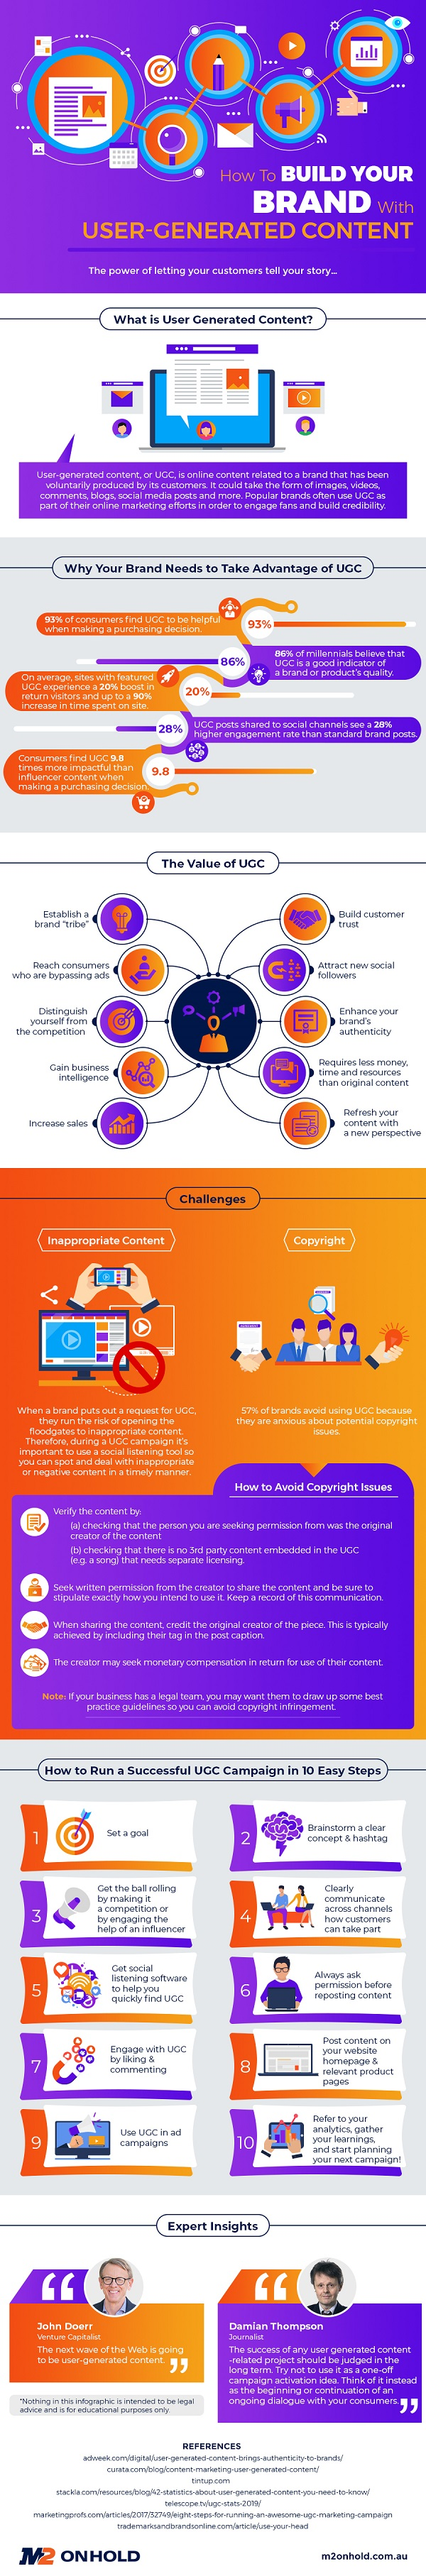 User-generated content infographic